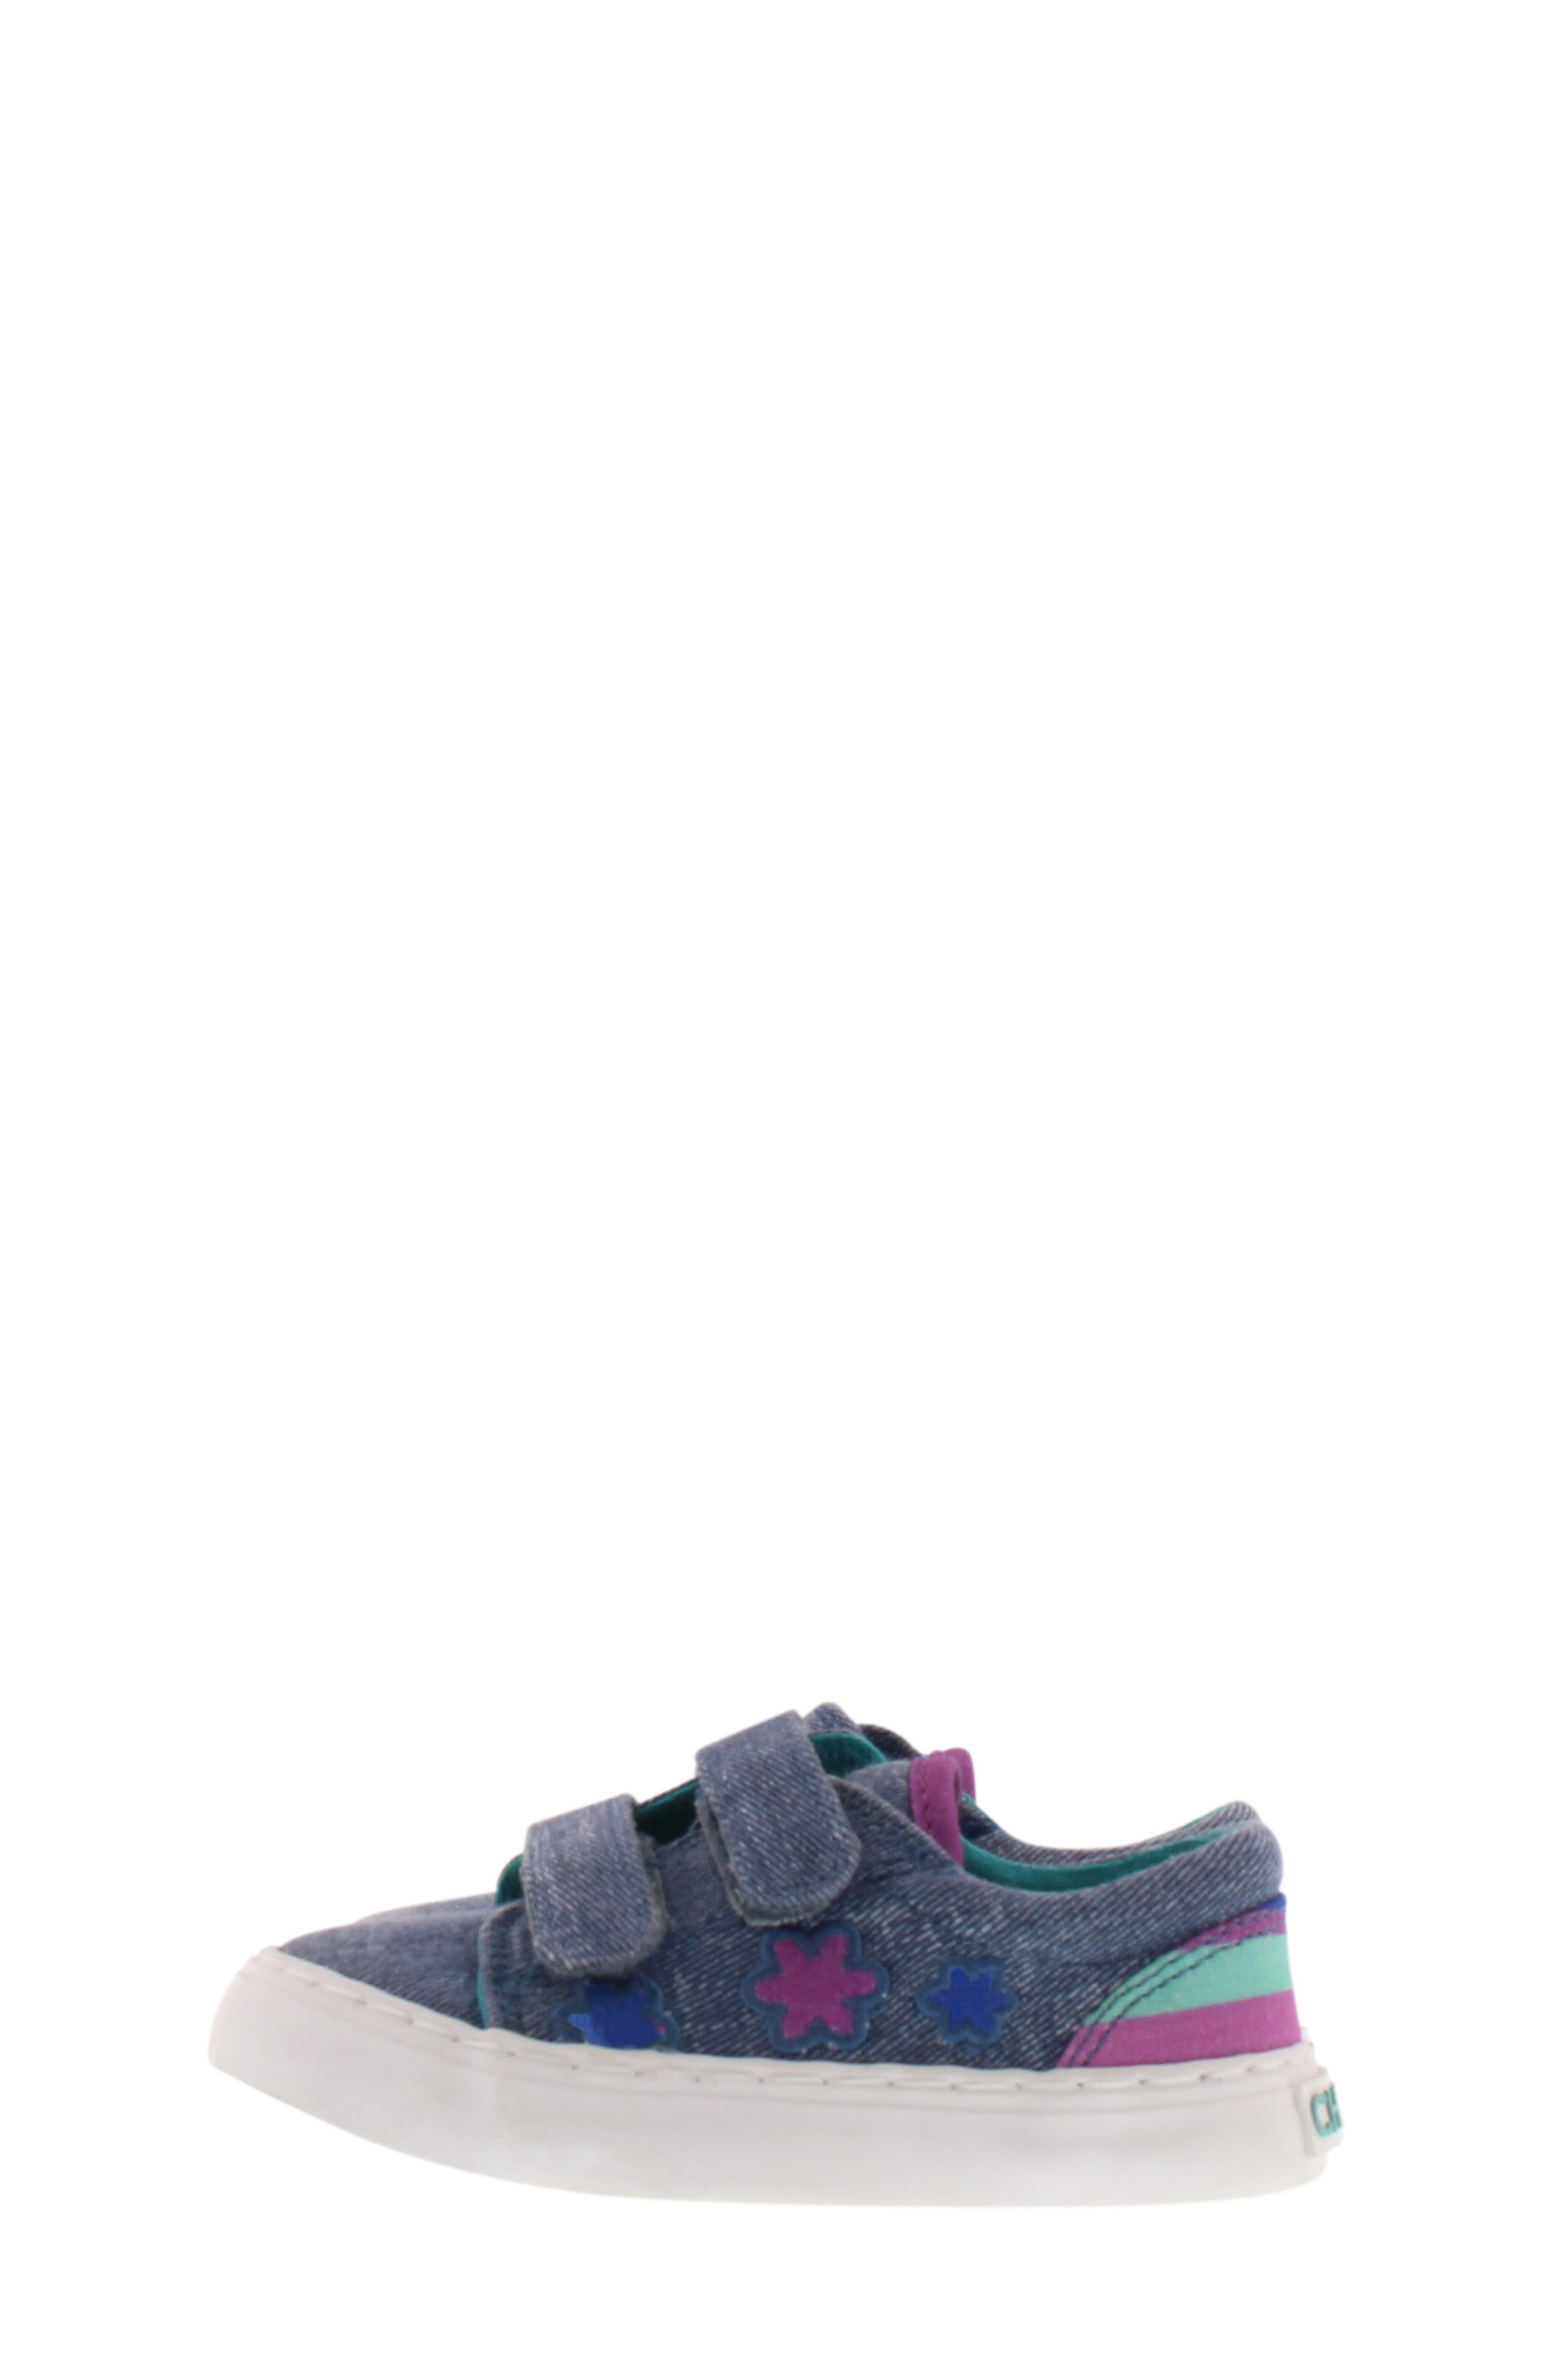 CHOOZE, Move Flower Appliqué Sneaker, Alternate thumbnail 3, color, DENIM